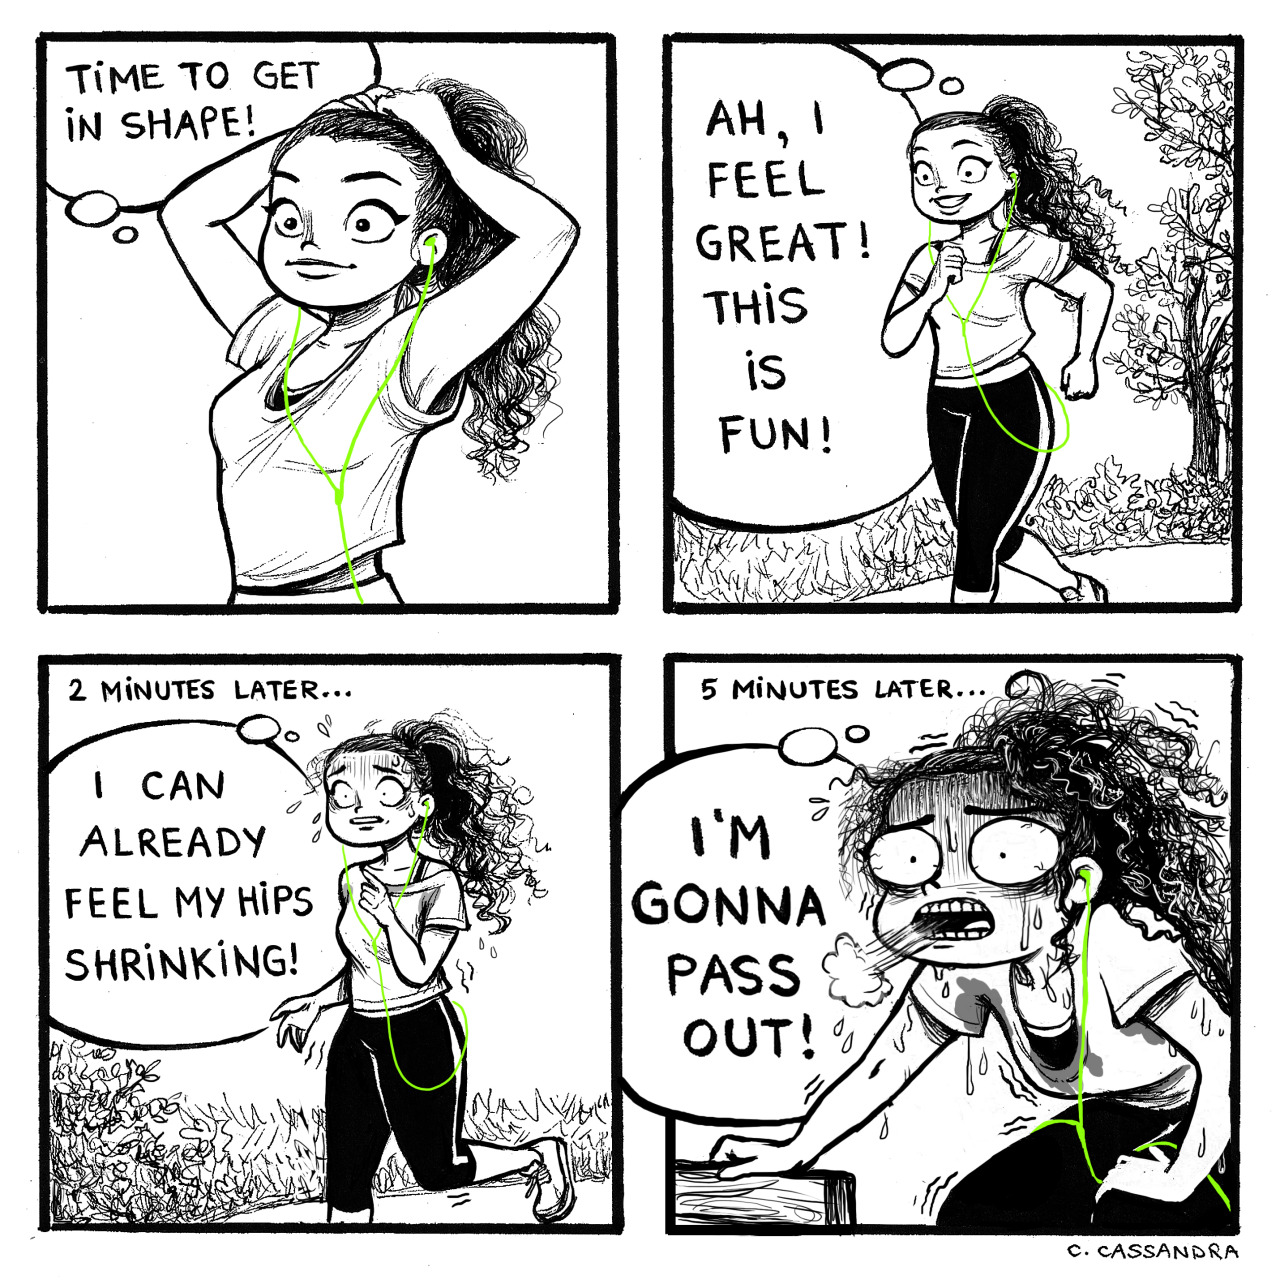 Hilarious Cartoon Illustrations of Problems that Every Woman has to Deal With!